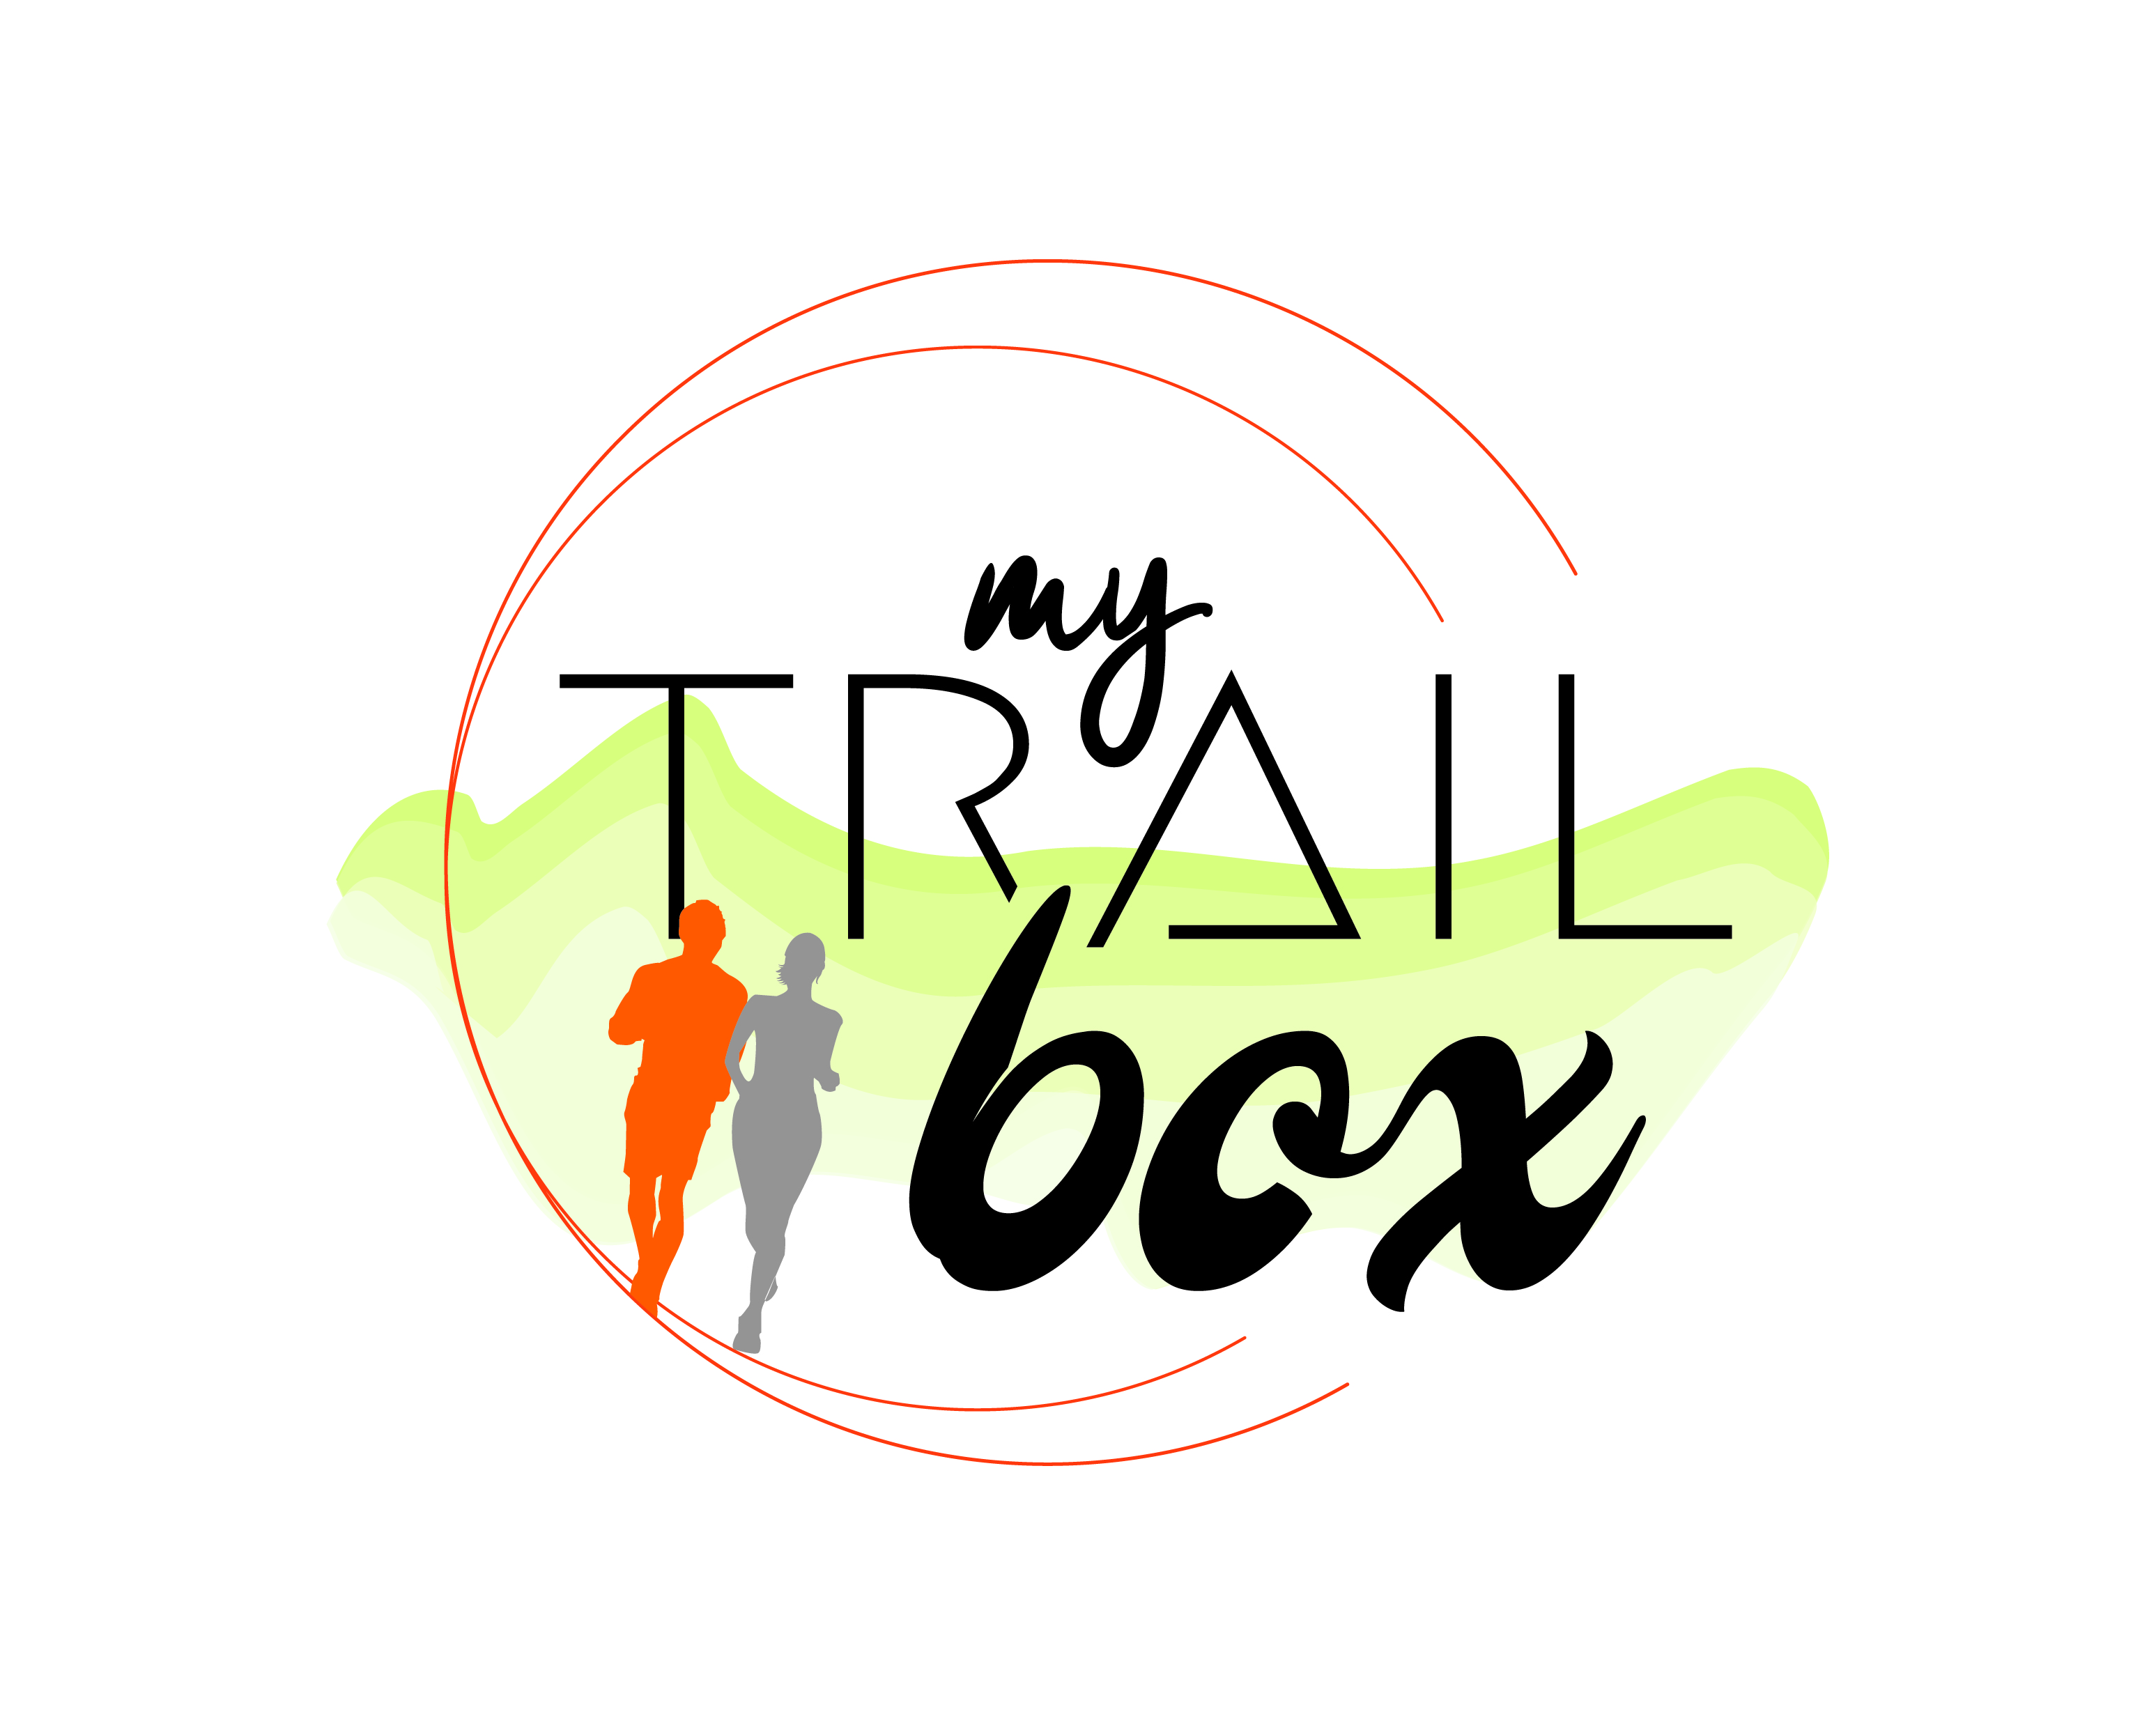 My trail box logo quadri